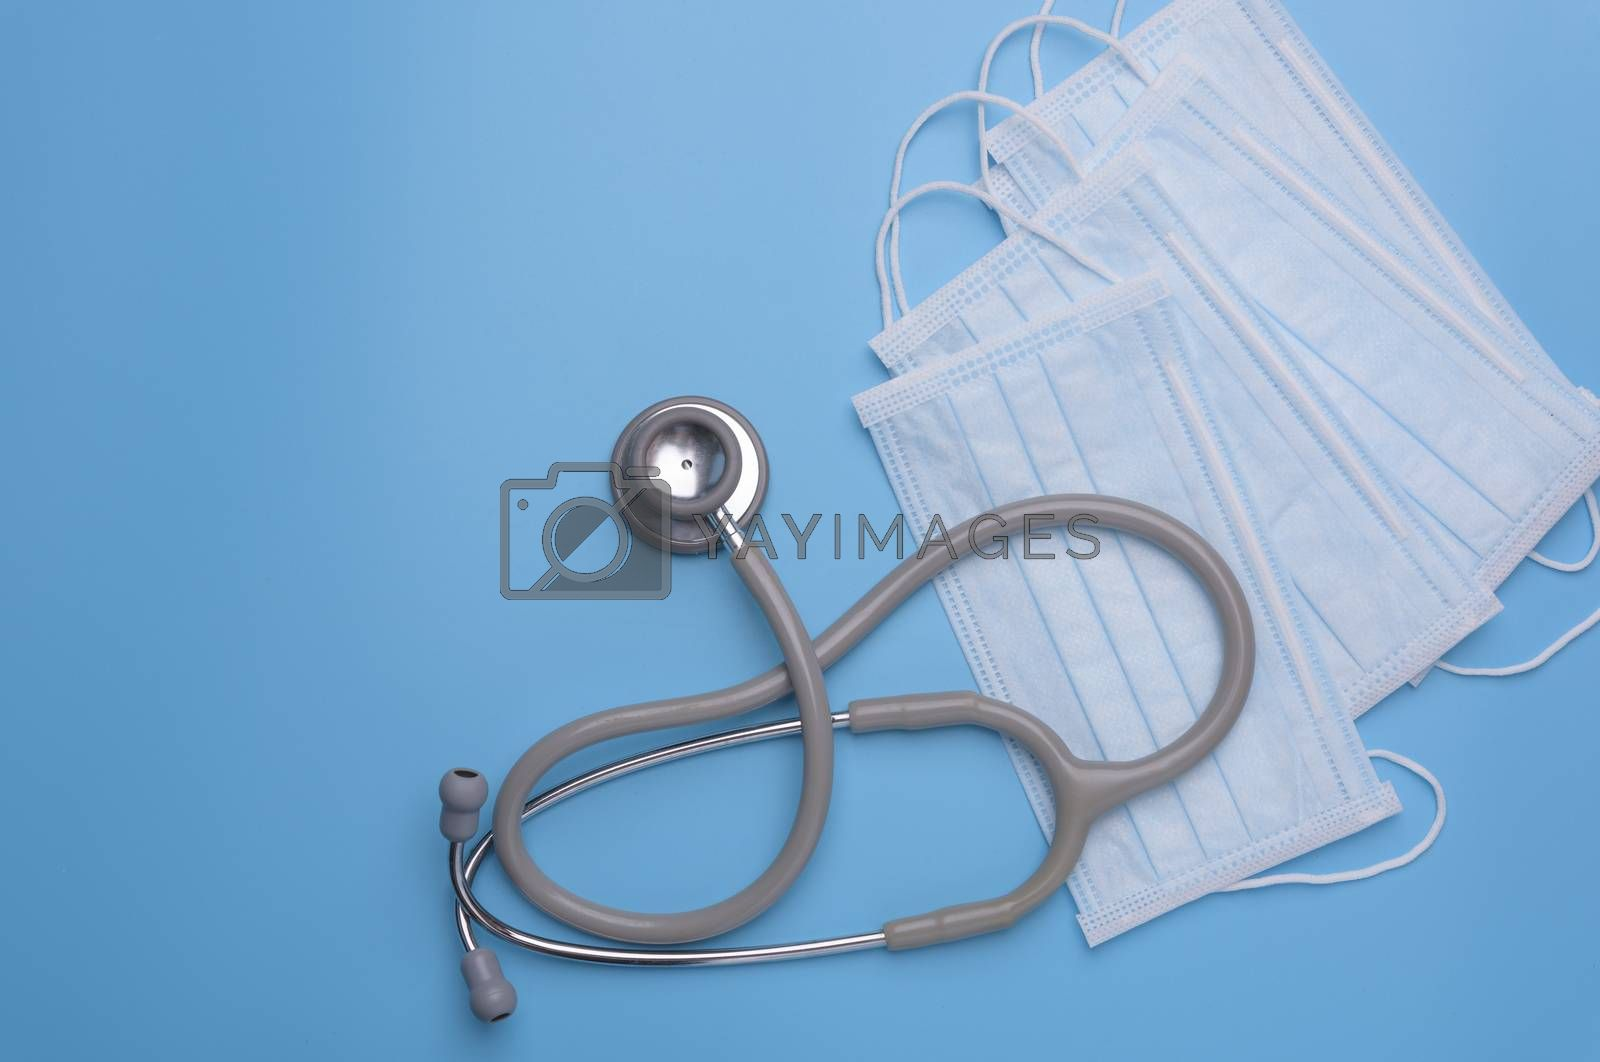 Coronavirus-Covid19,surgical ace mask protection against pollution, virus, flu  and stethoscope on blue background,top view